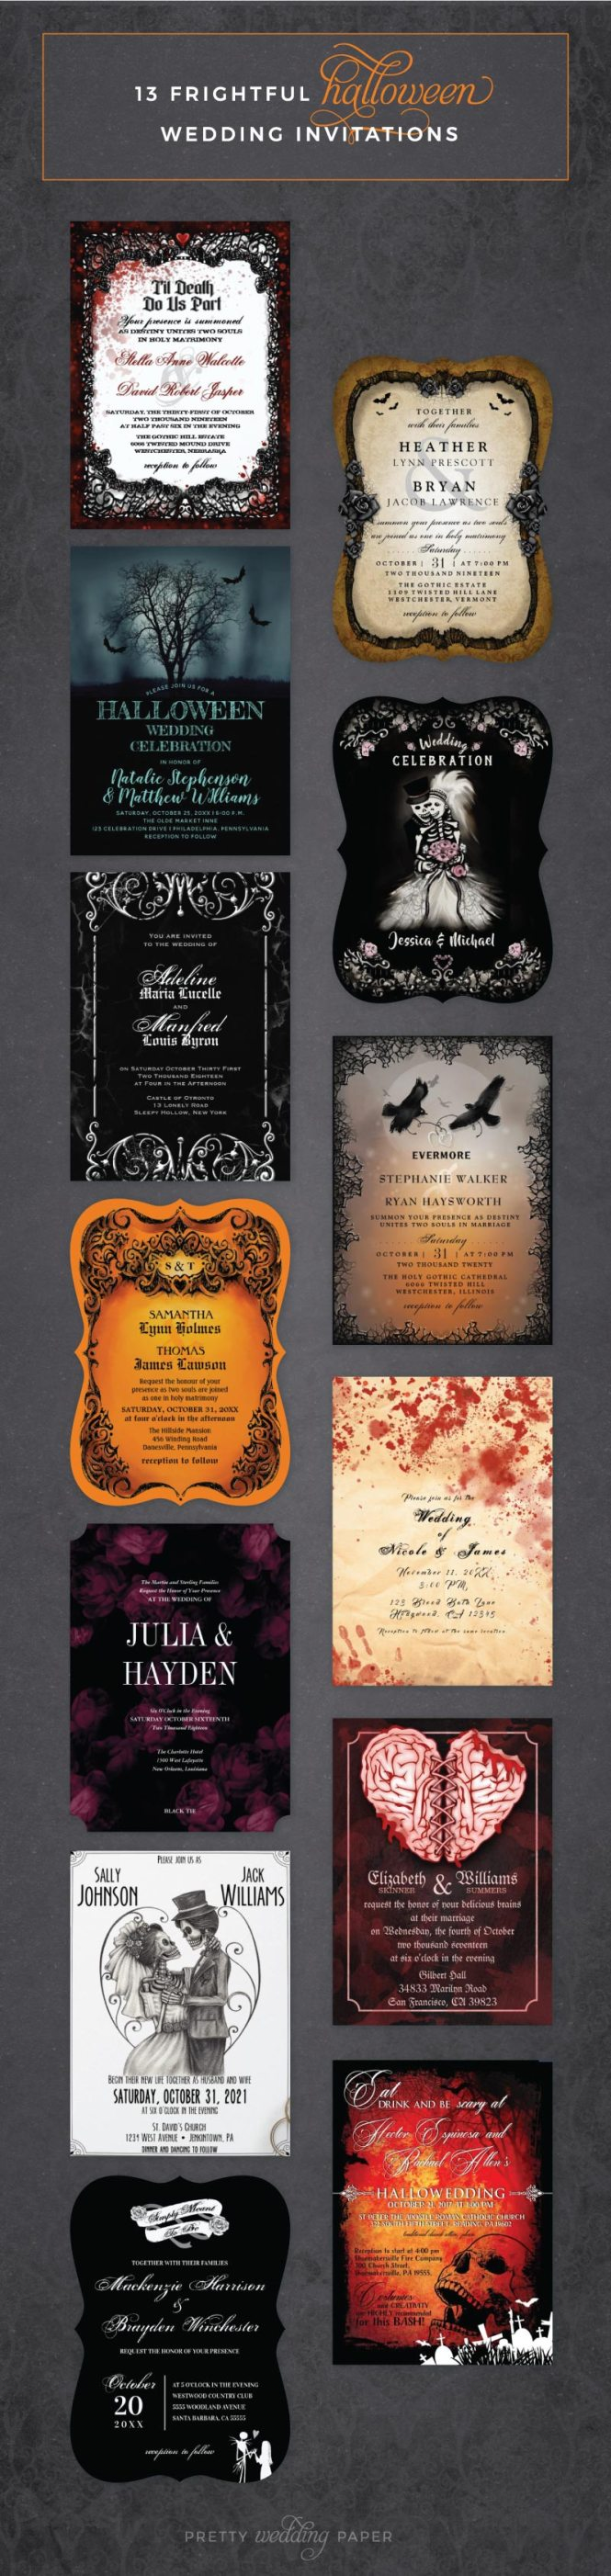 Zombie Wedding Invitation Archives